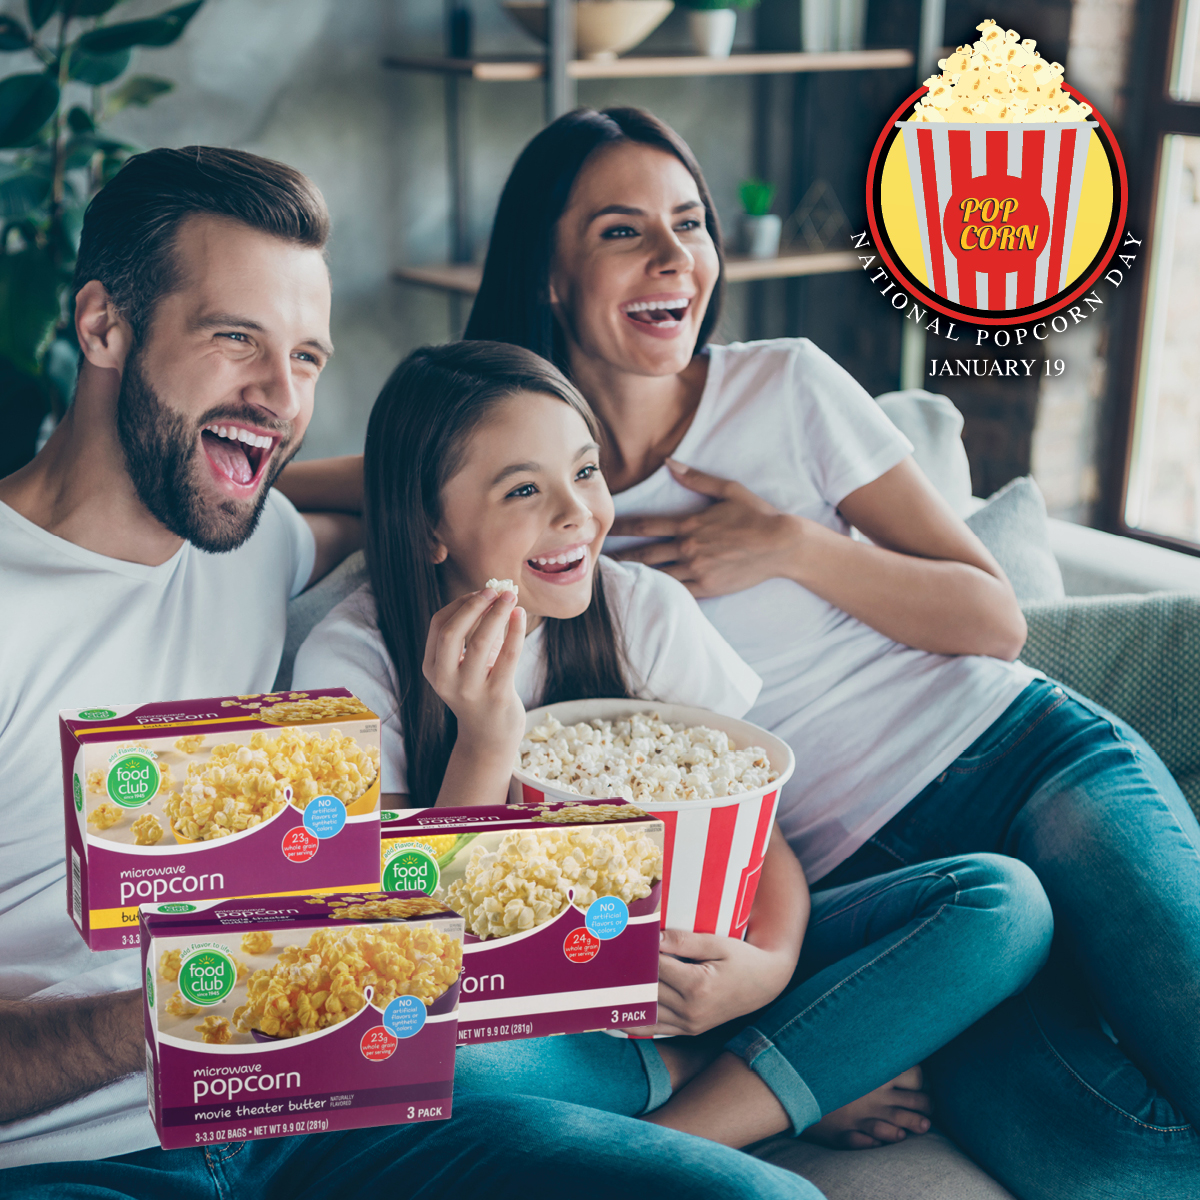 Save and earn Celebrate Rewards points when you enjoy Food Club Popcorn this National Popcorn Day! 🍿 Sign up to begin saving ➡   #BrookshireBrothers #NationalPopcornDay #CelebrateRewards